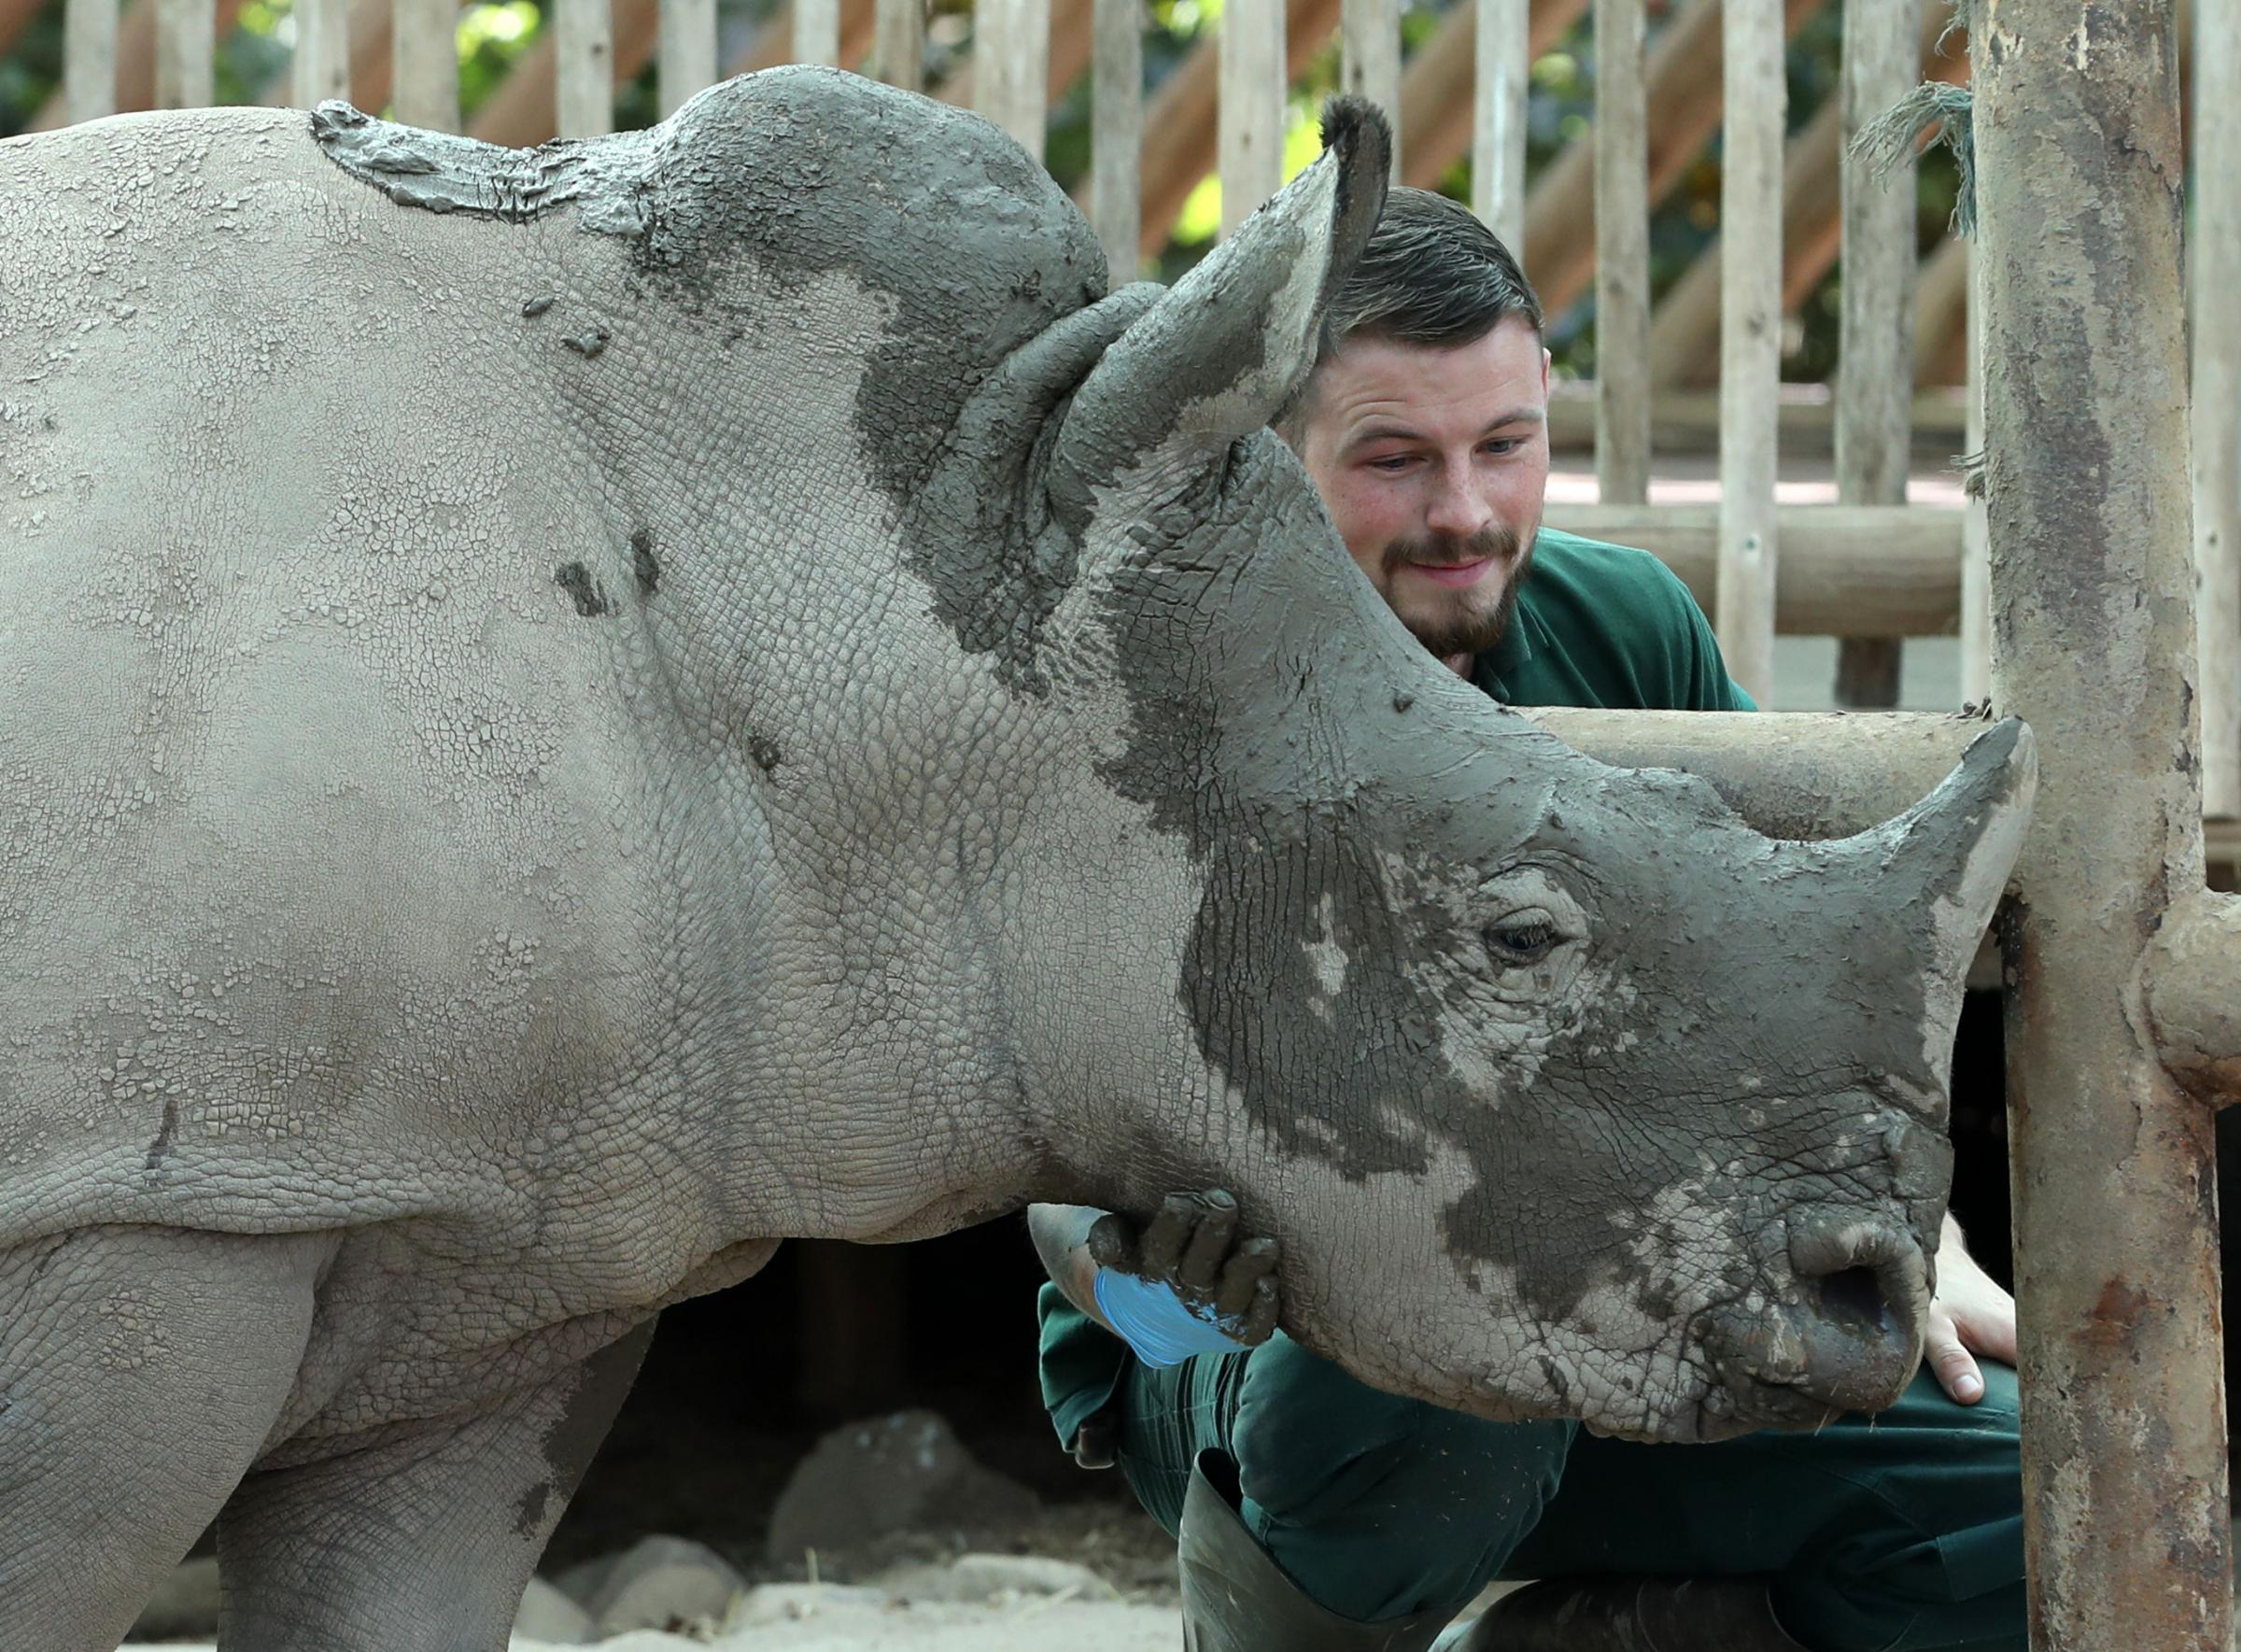 Bonnie the rhino celebrates first birthday with mudpack